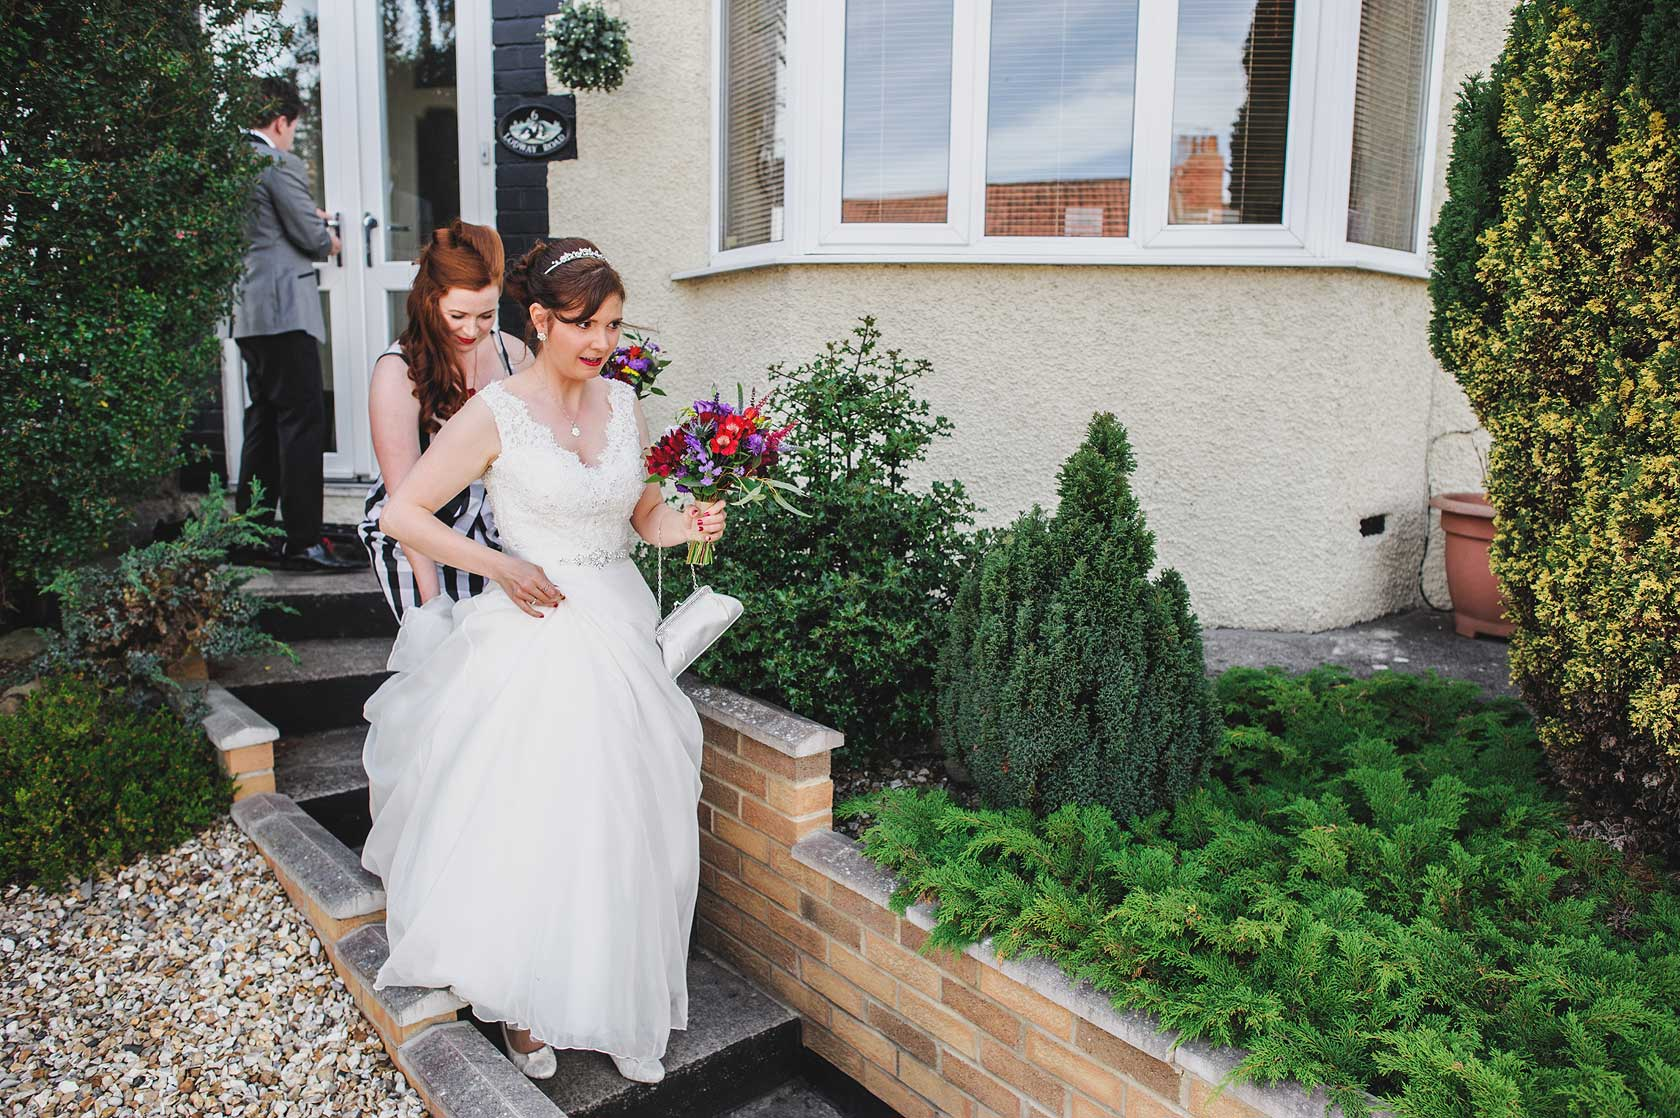 Reportage Wedding Photography at SS Great Britain